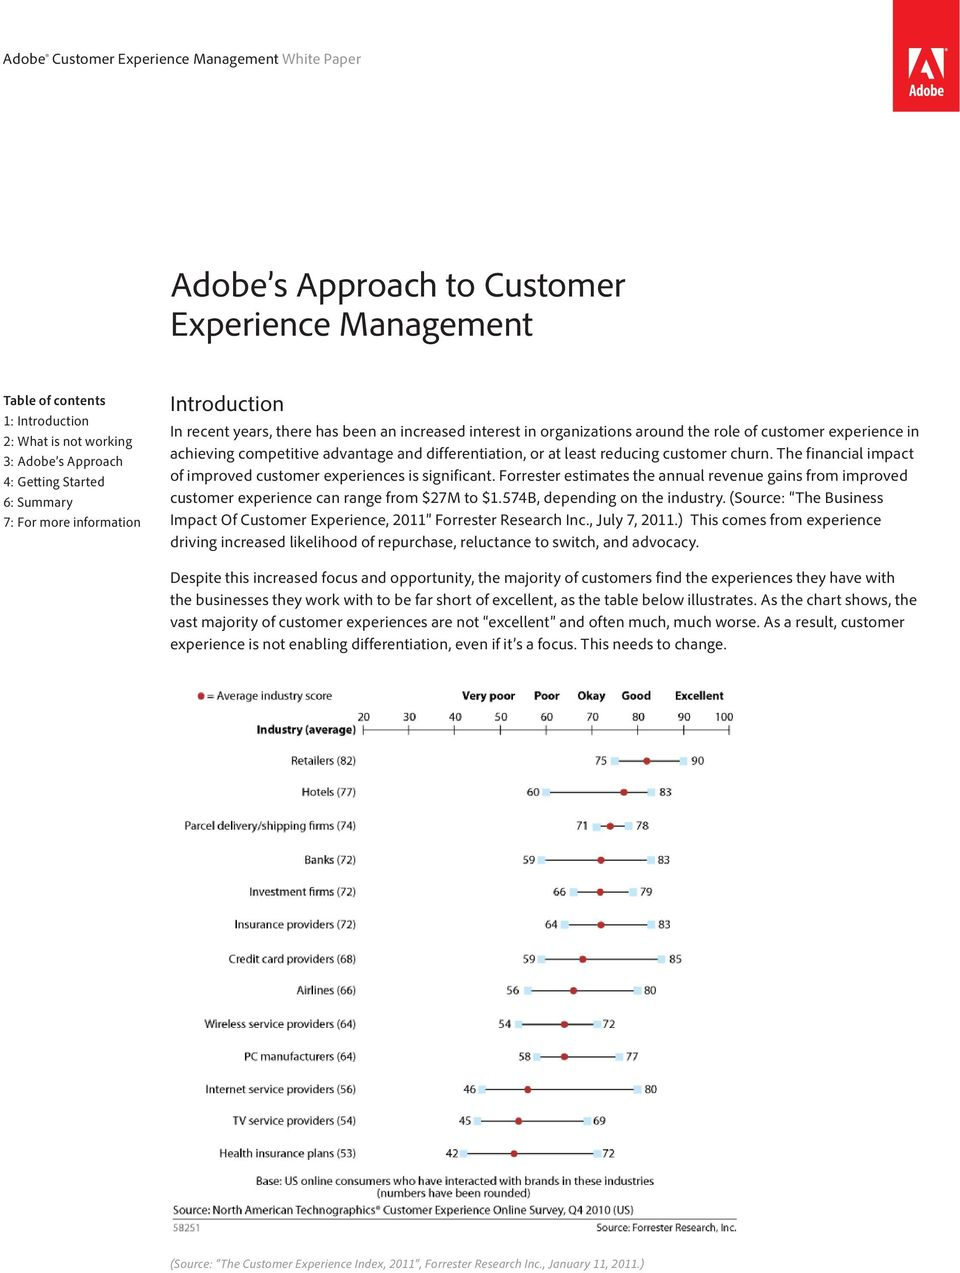 The financial impact of improved customer experiences is significant. Forrester estimates the annual revenue gains from improved customer experience can range from $27M to $1.